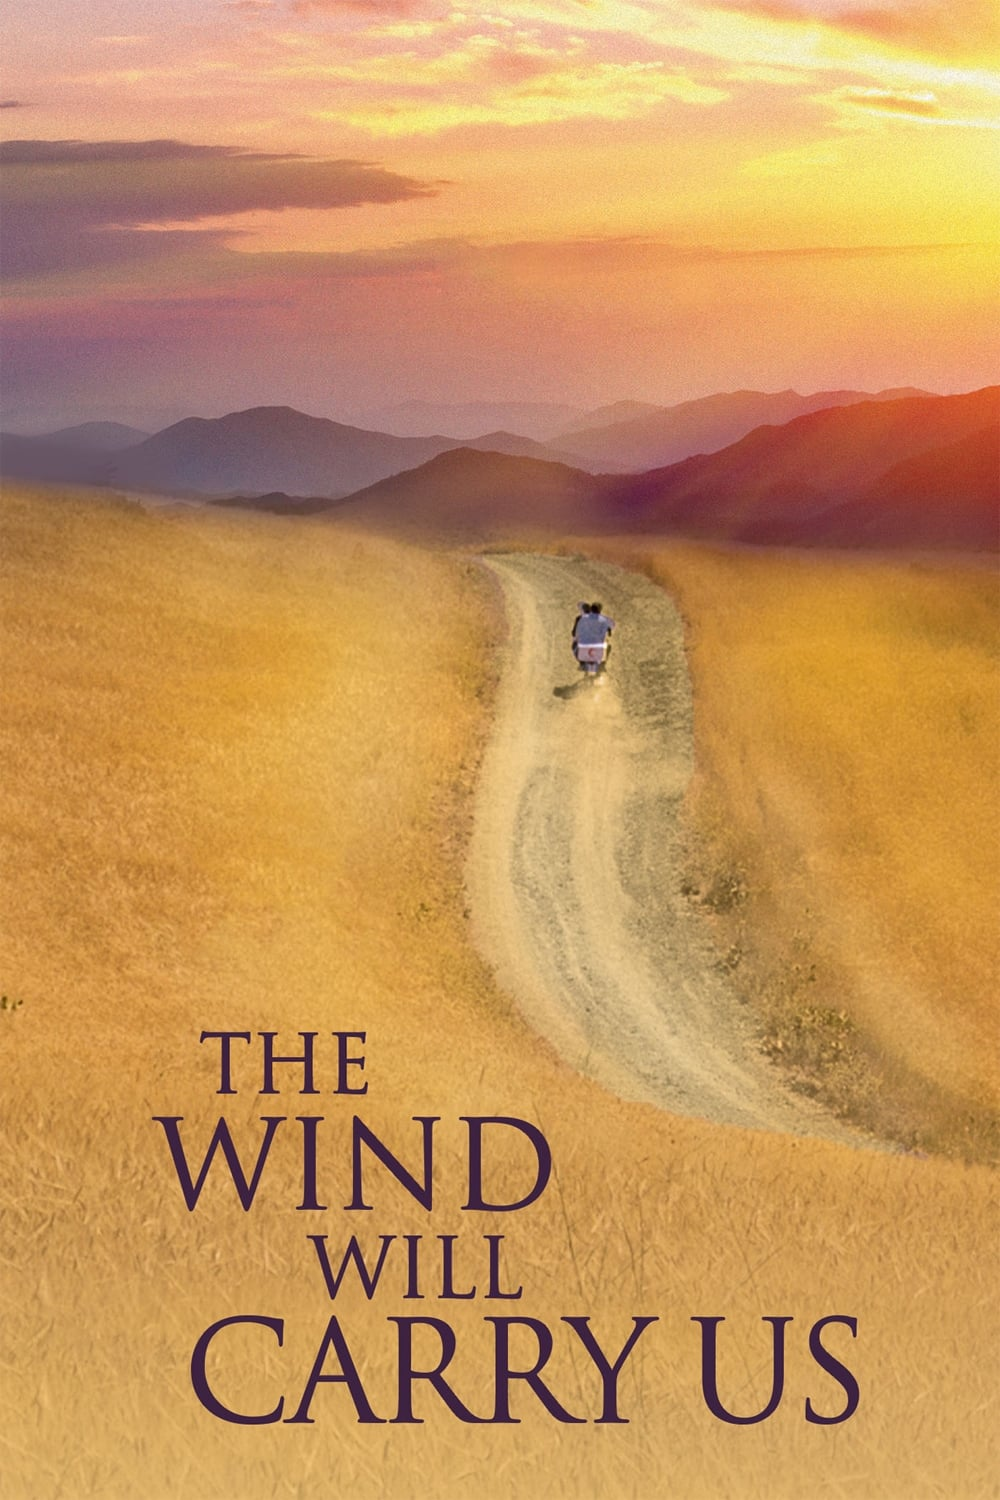 Poster for THE WIND WILL CARRY US